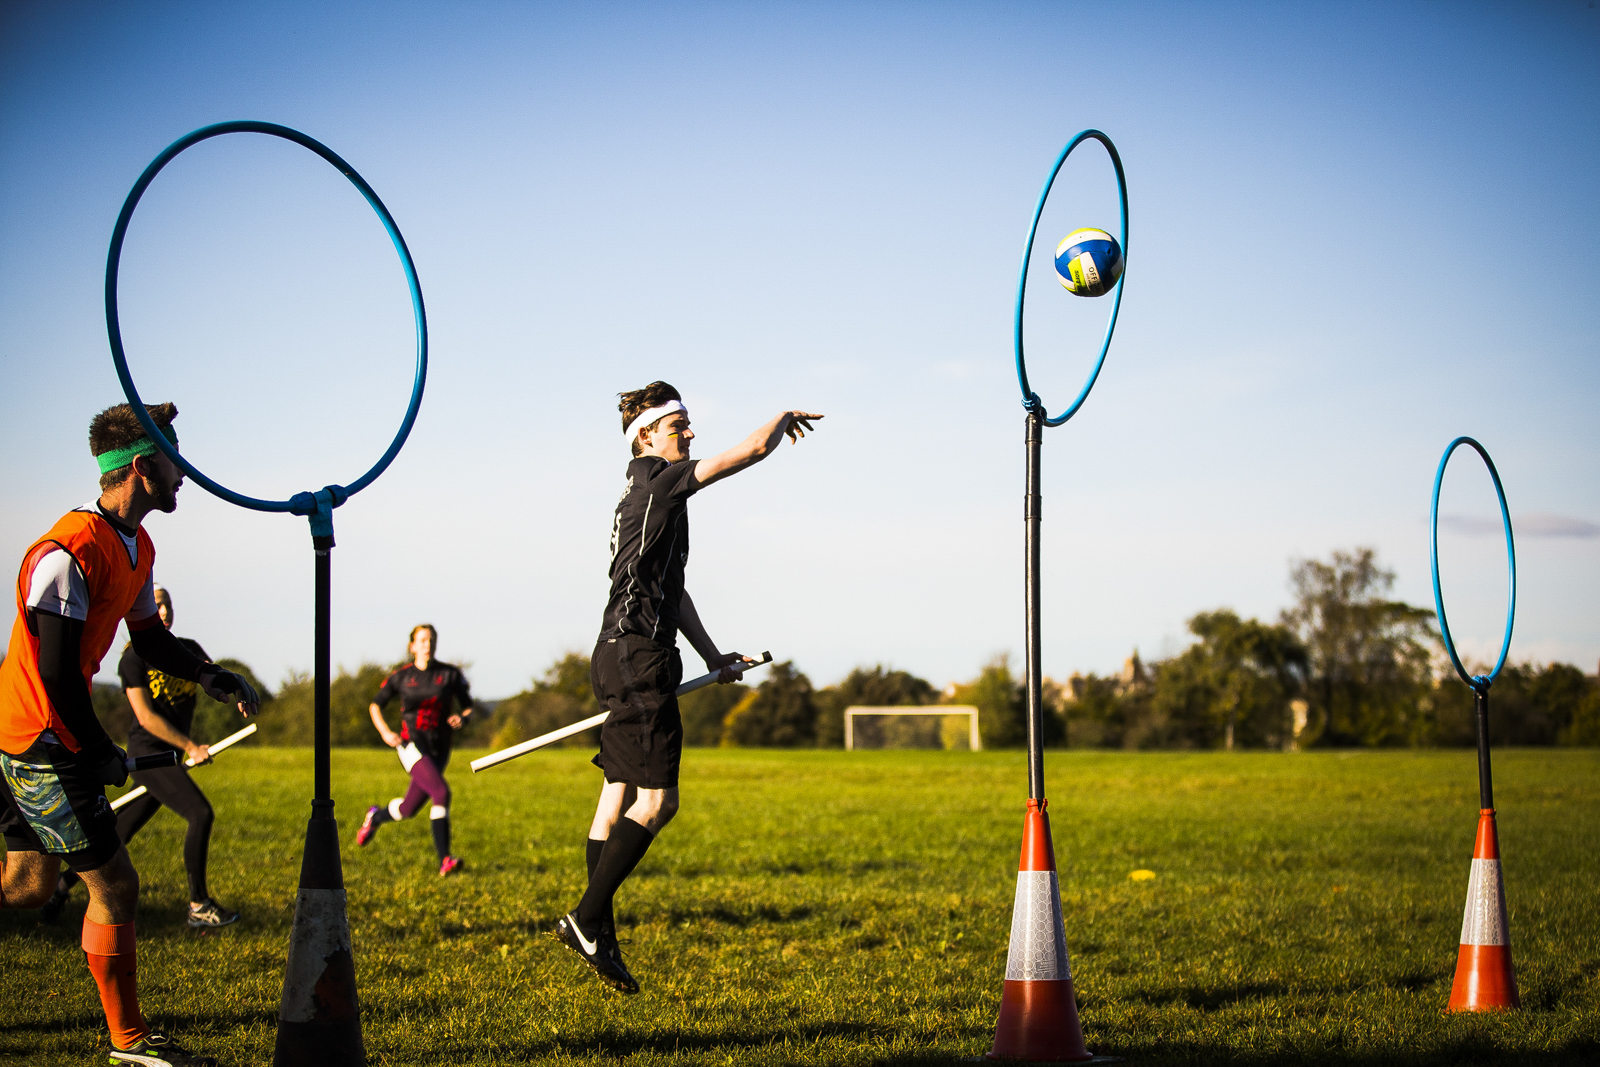 The Brizzle Bees, a Bristol based Quidditch team play against the Exeter Eagles as part of the South West Quidditch League.